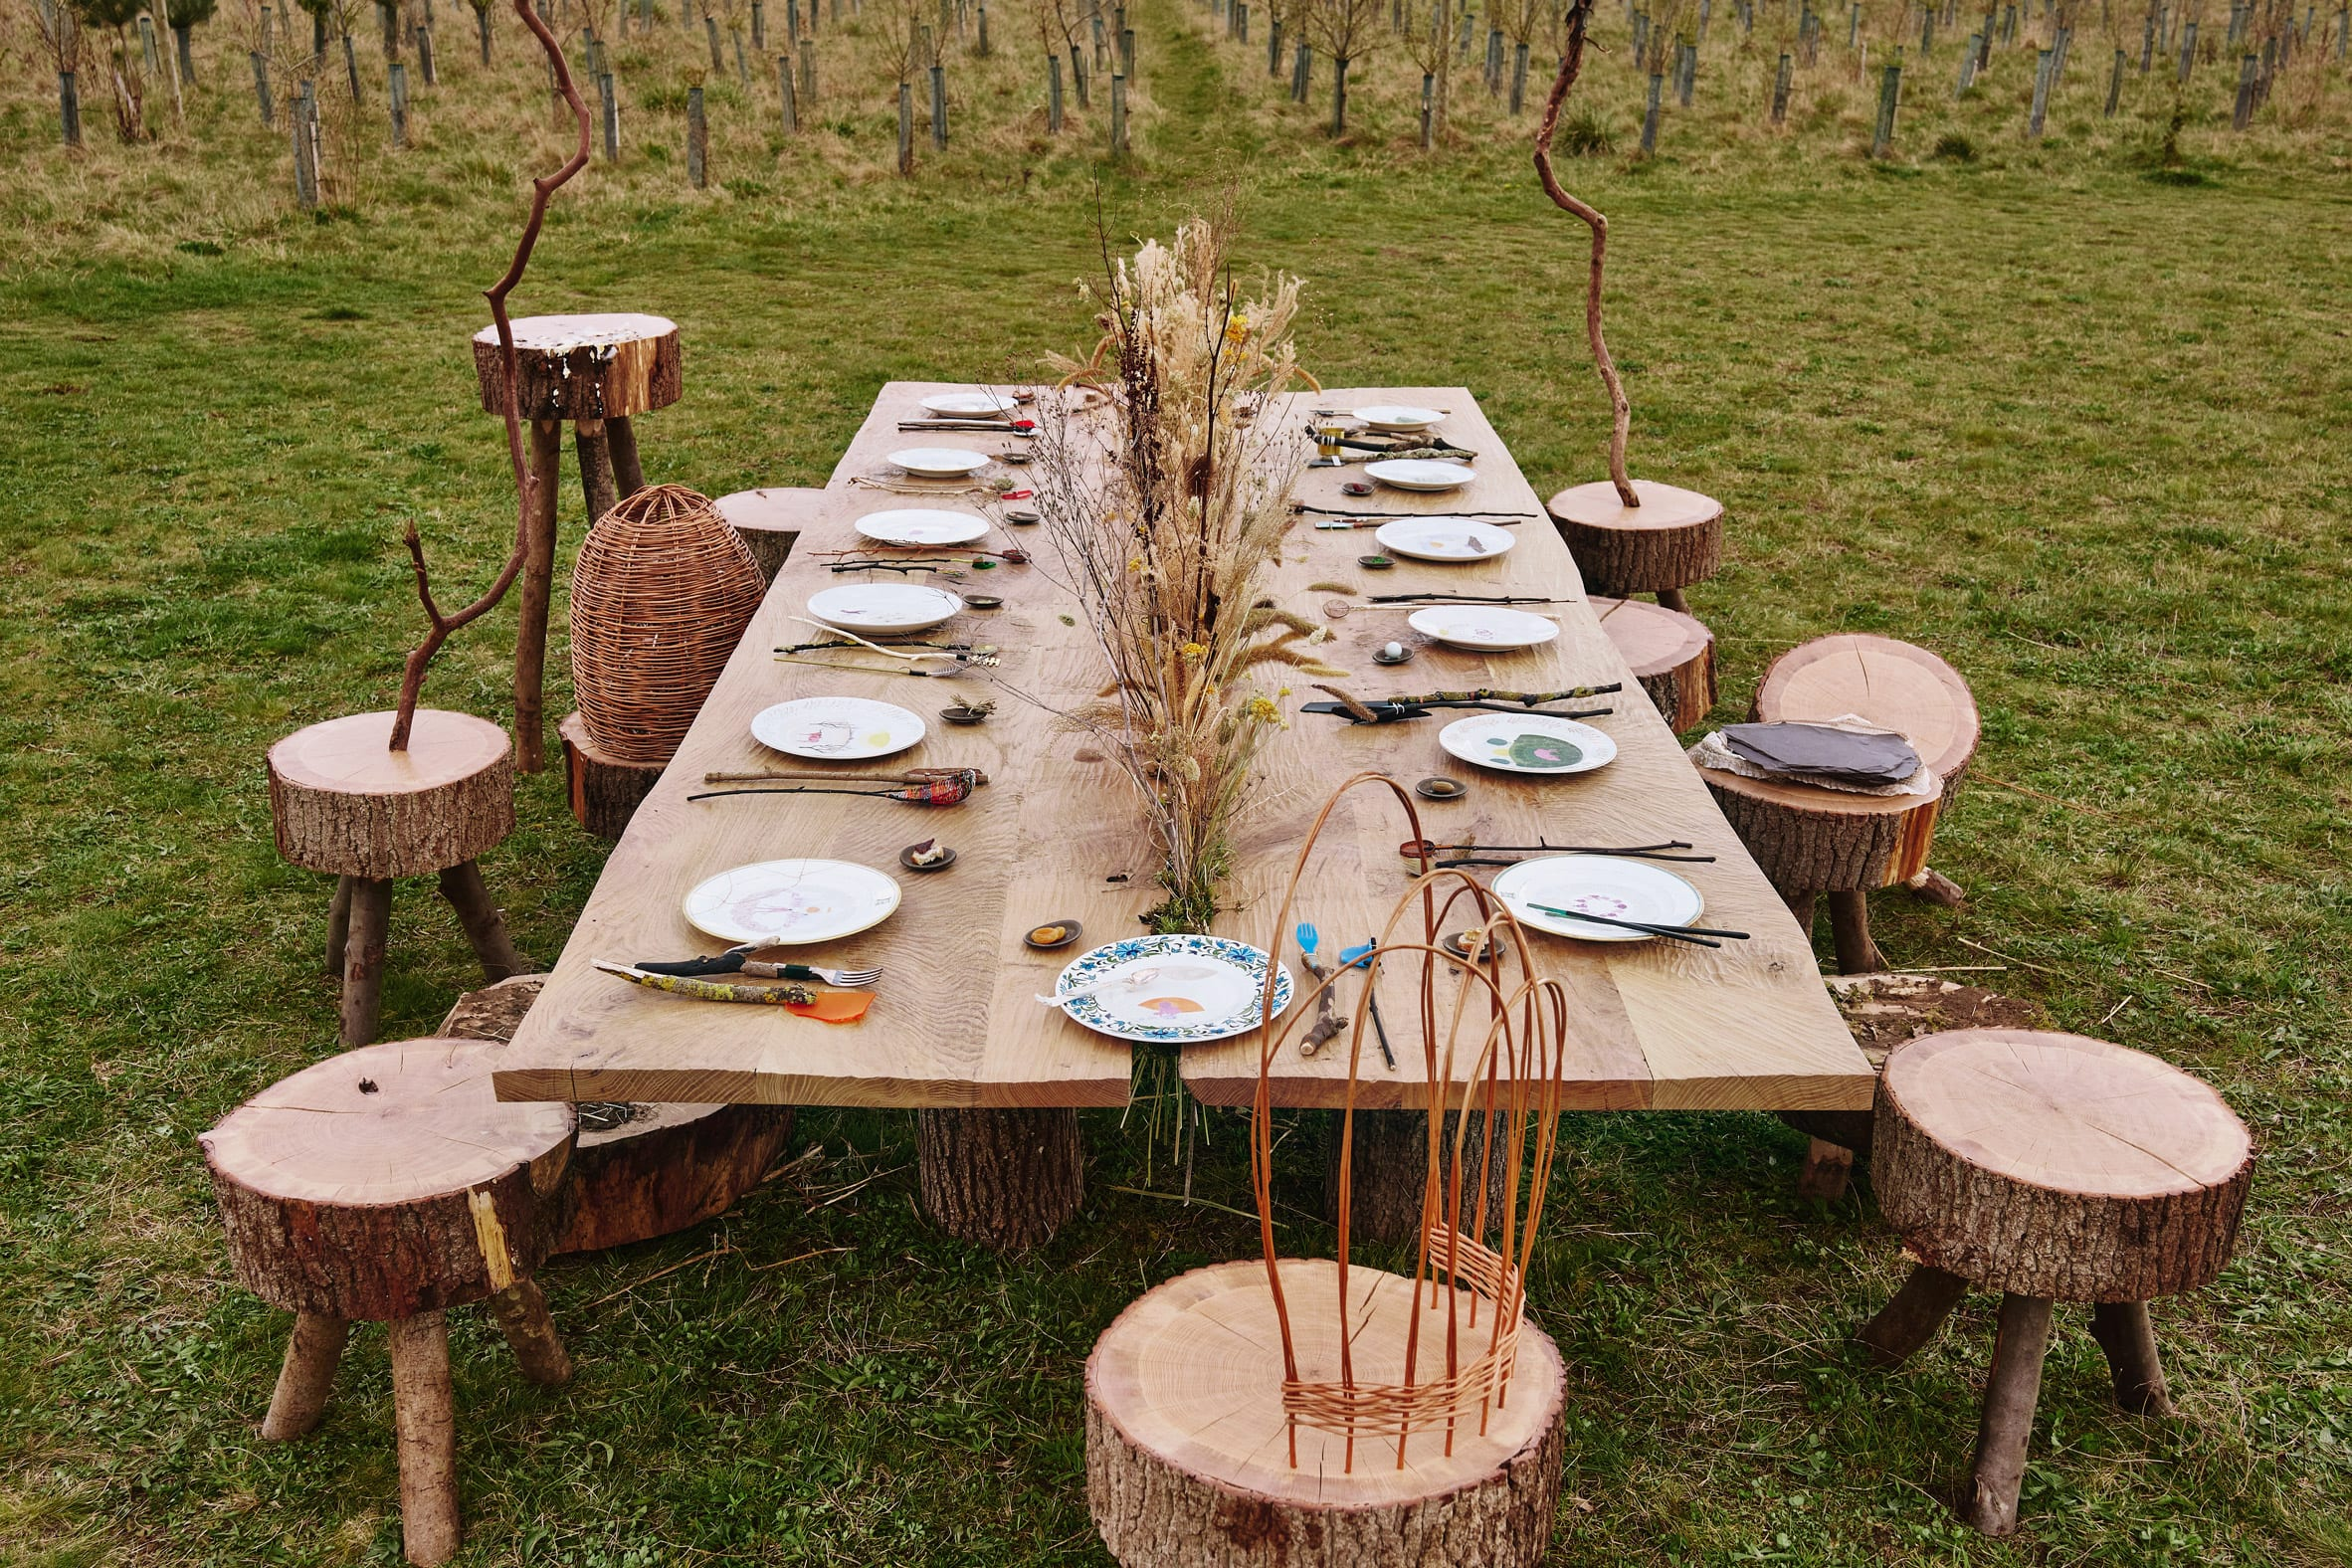 Wide view of stools gathered around wooden banquet table in Venice Architecture Biennale installation by Superflux